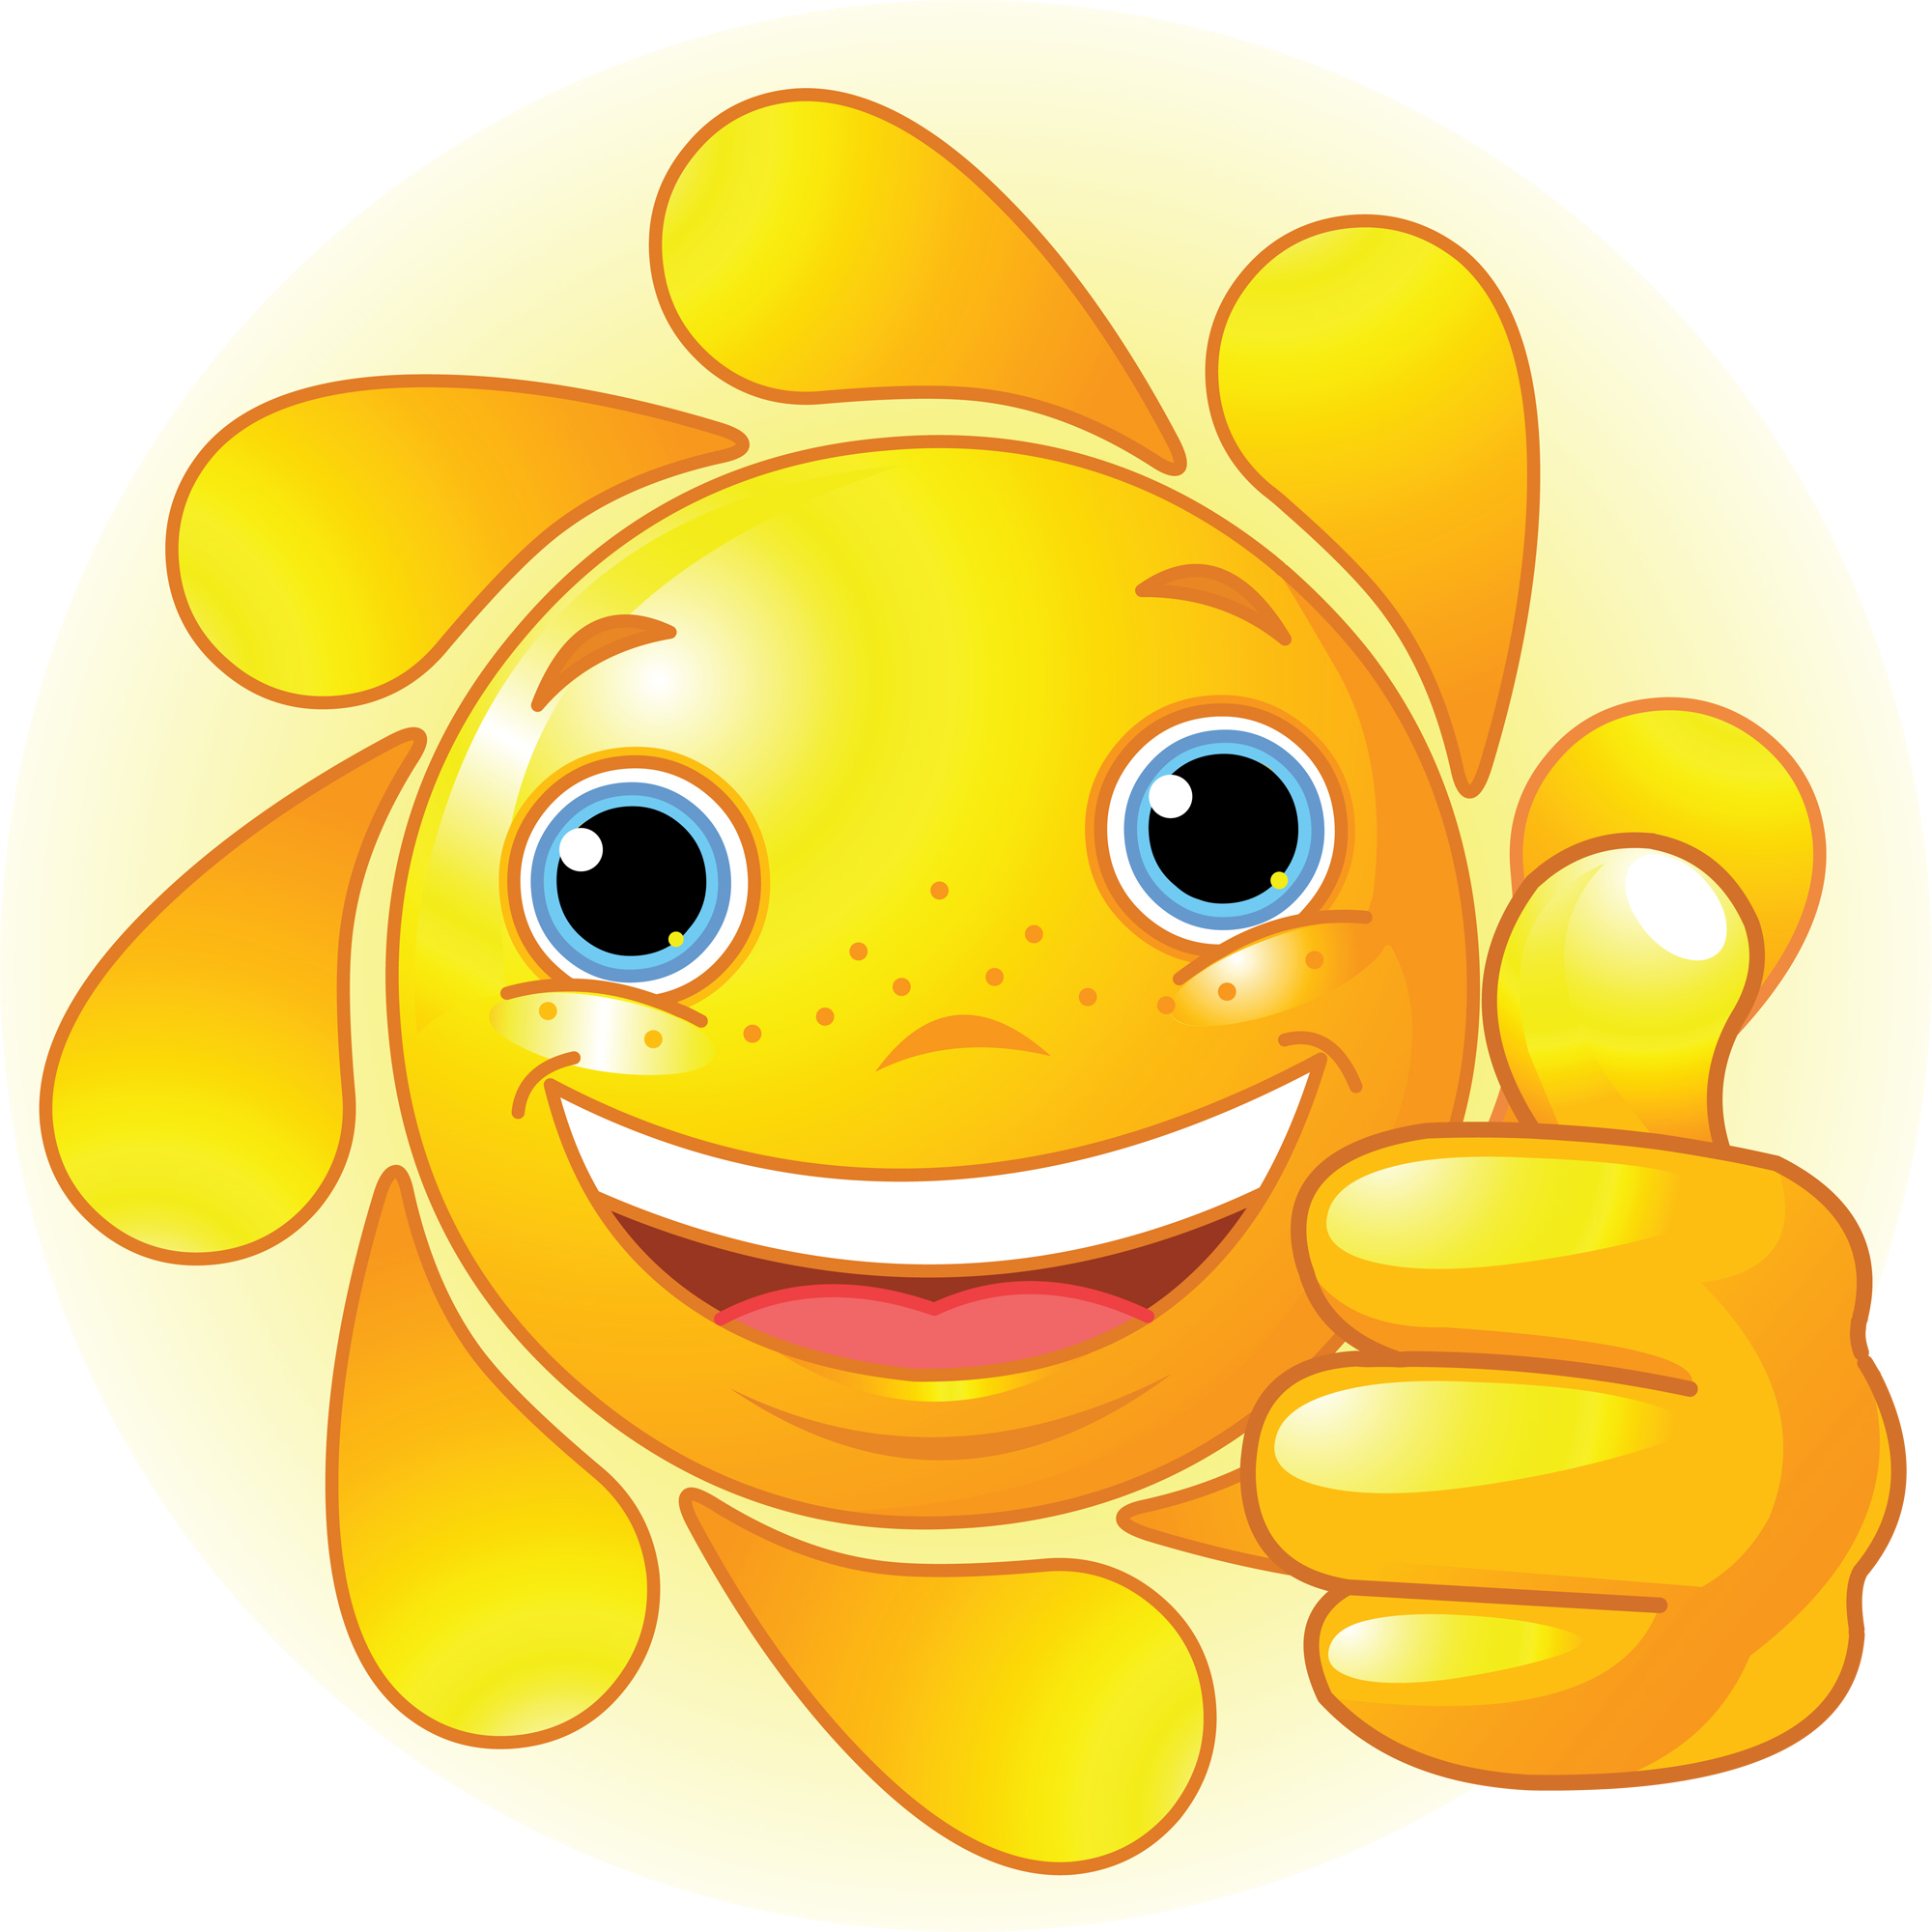 41 images of Smiling Sun Images . You can use these free cliparts for ...